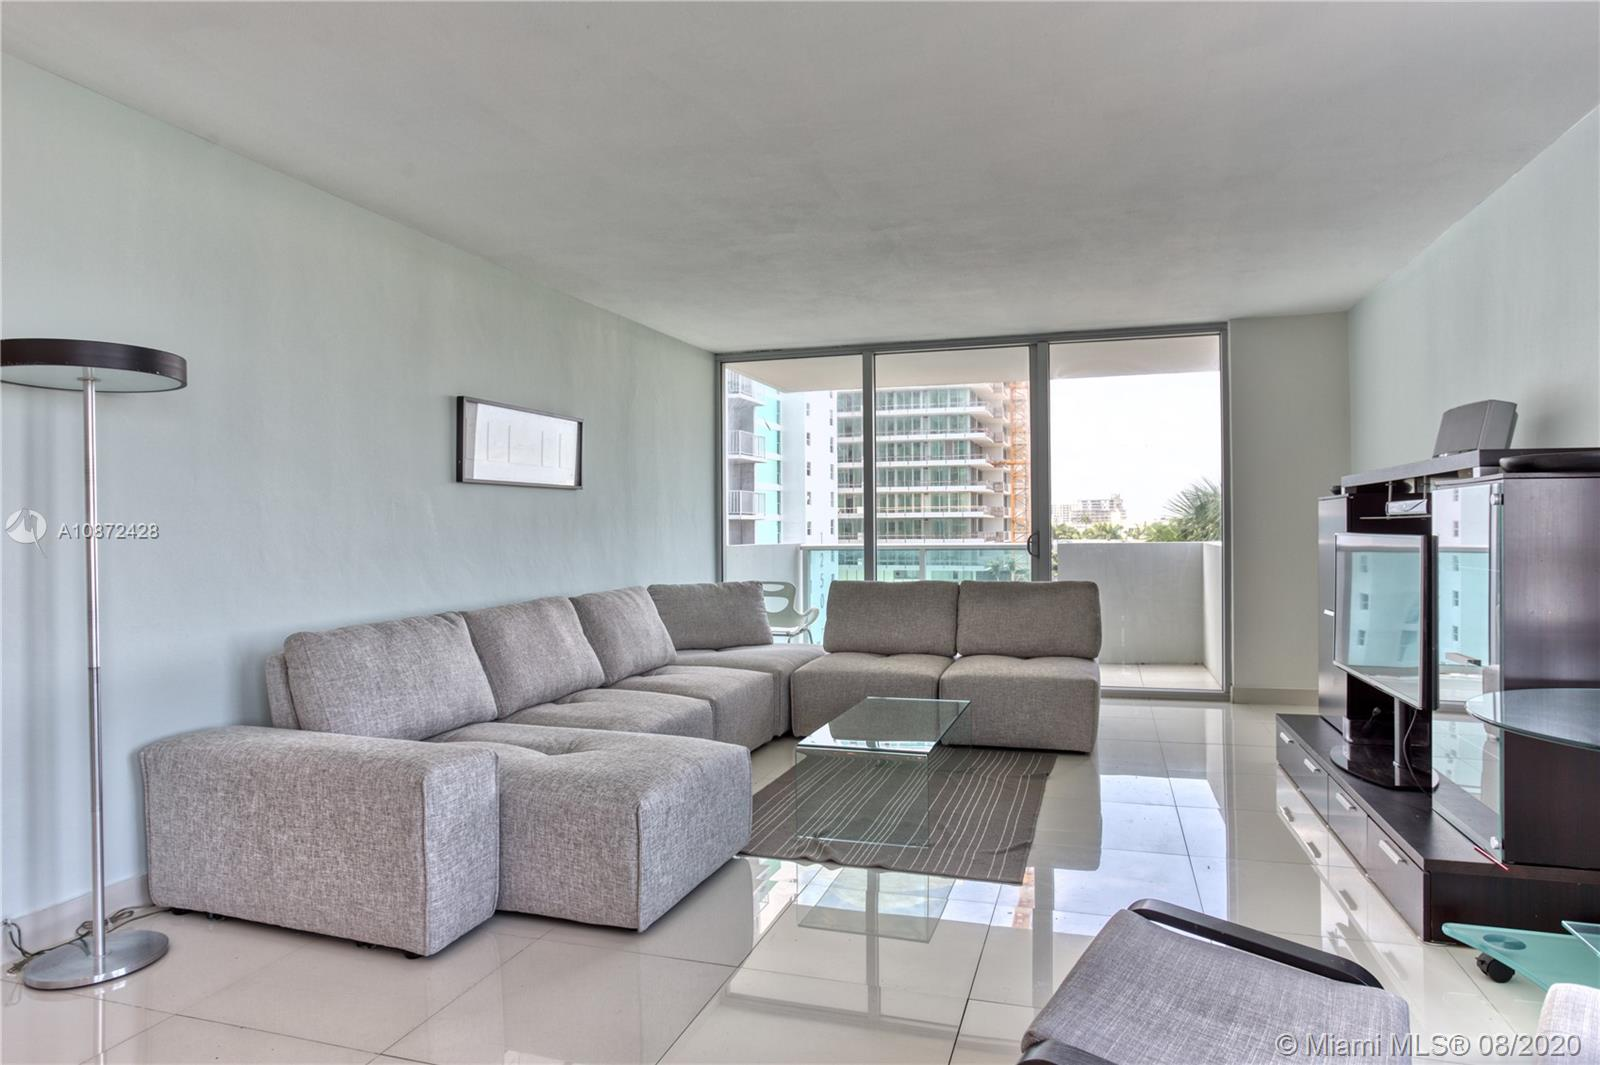 Mirador North #516 - 1200 West Ave #516, Miami Beach, FL 33139